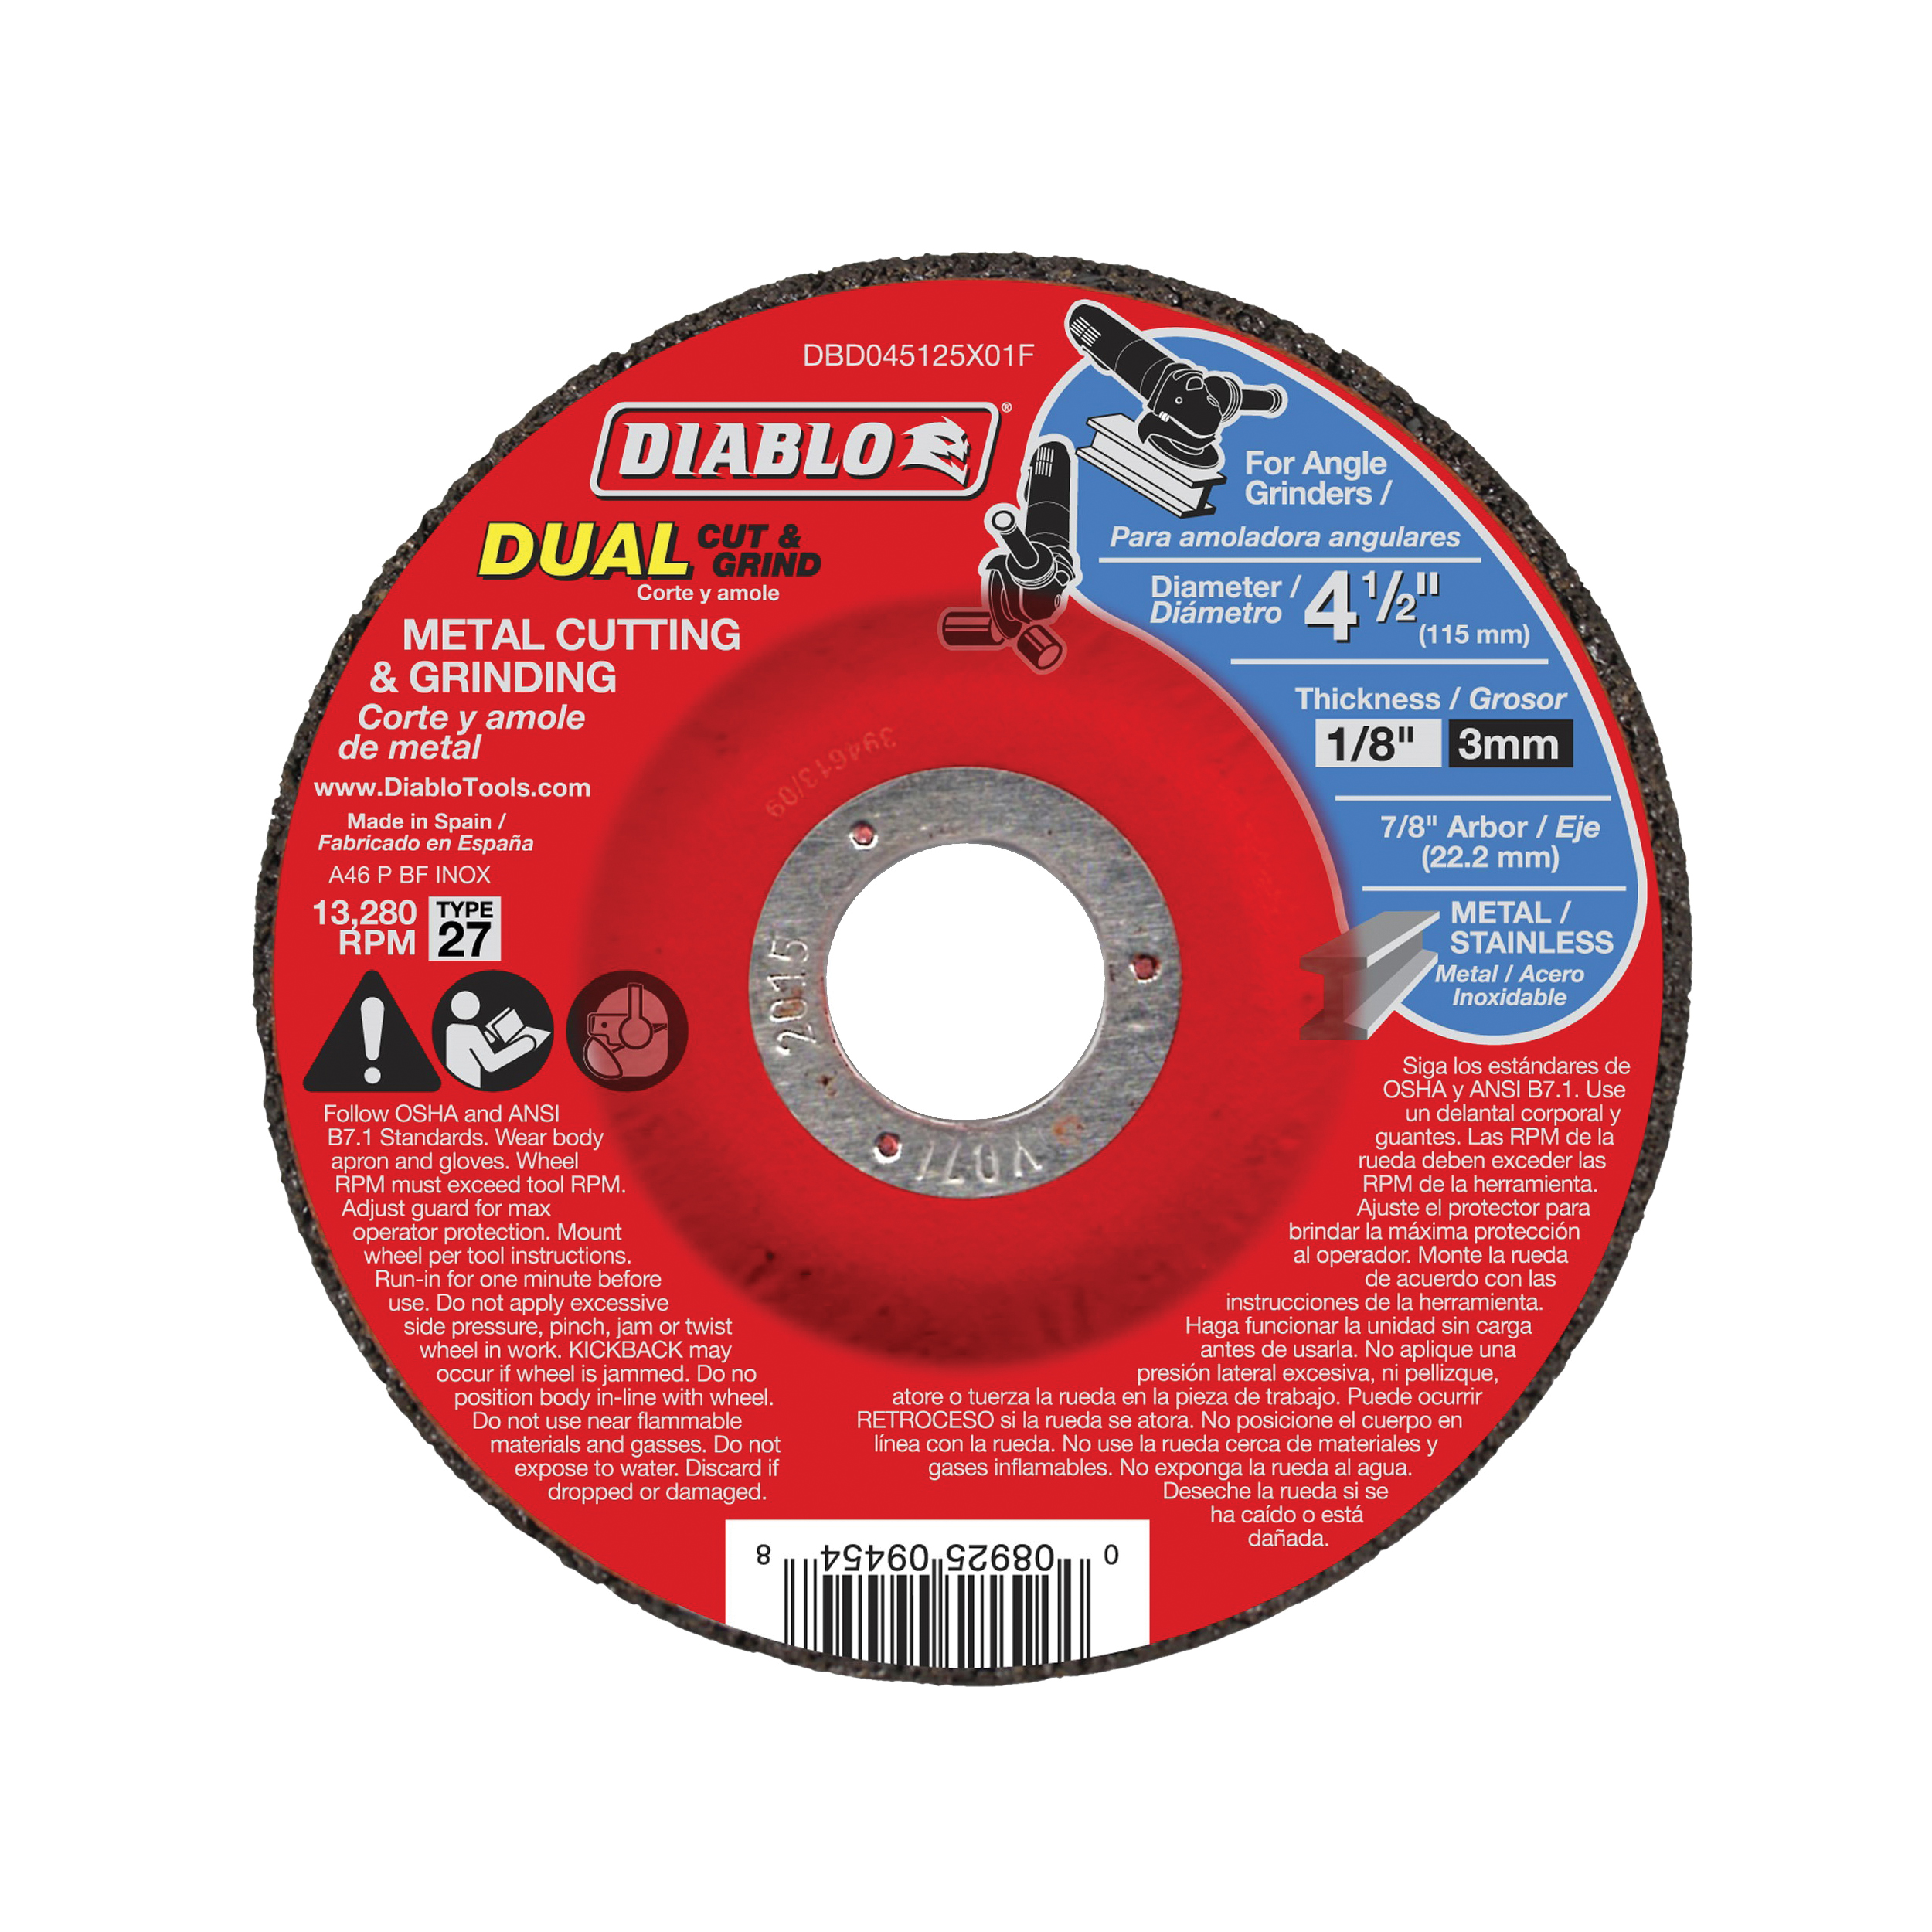 Picture of Diablo DBD045125X01F Cut and Grind Wheel, 4-1/2 in Dia, 1/8 in Thick, 7/8 in Arbor, Aluminum Oxide Abrasive